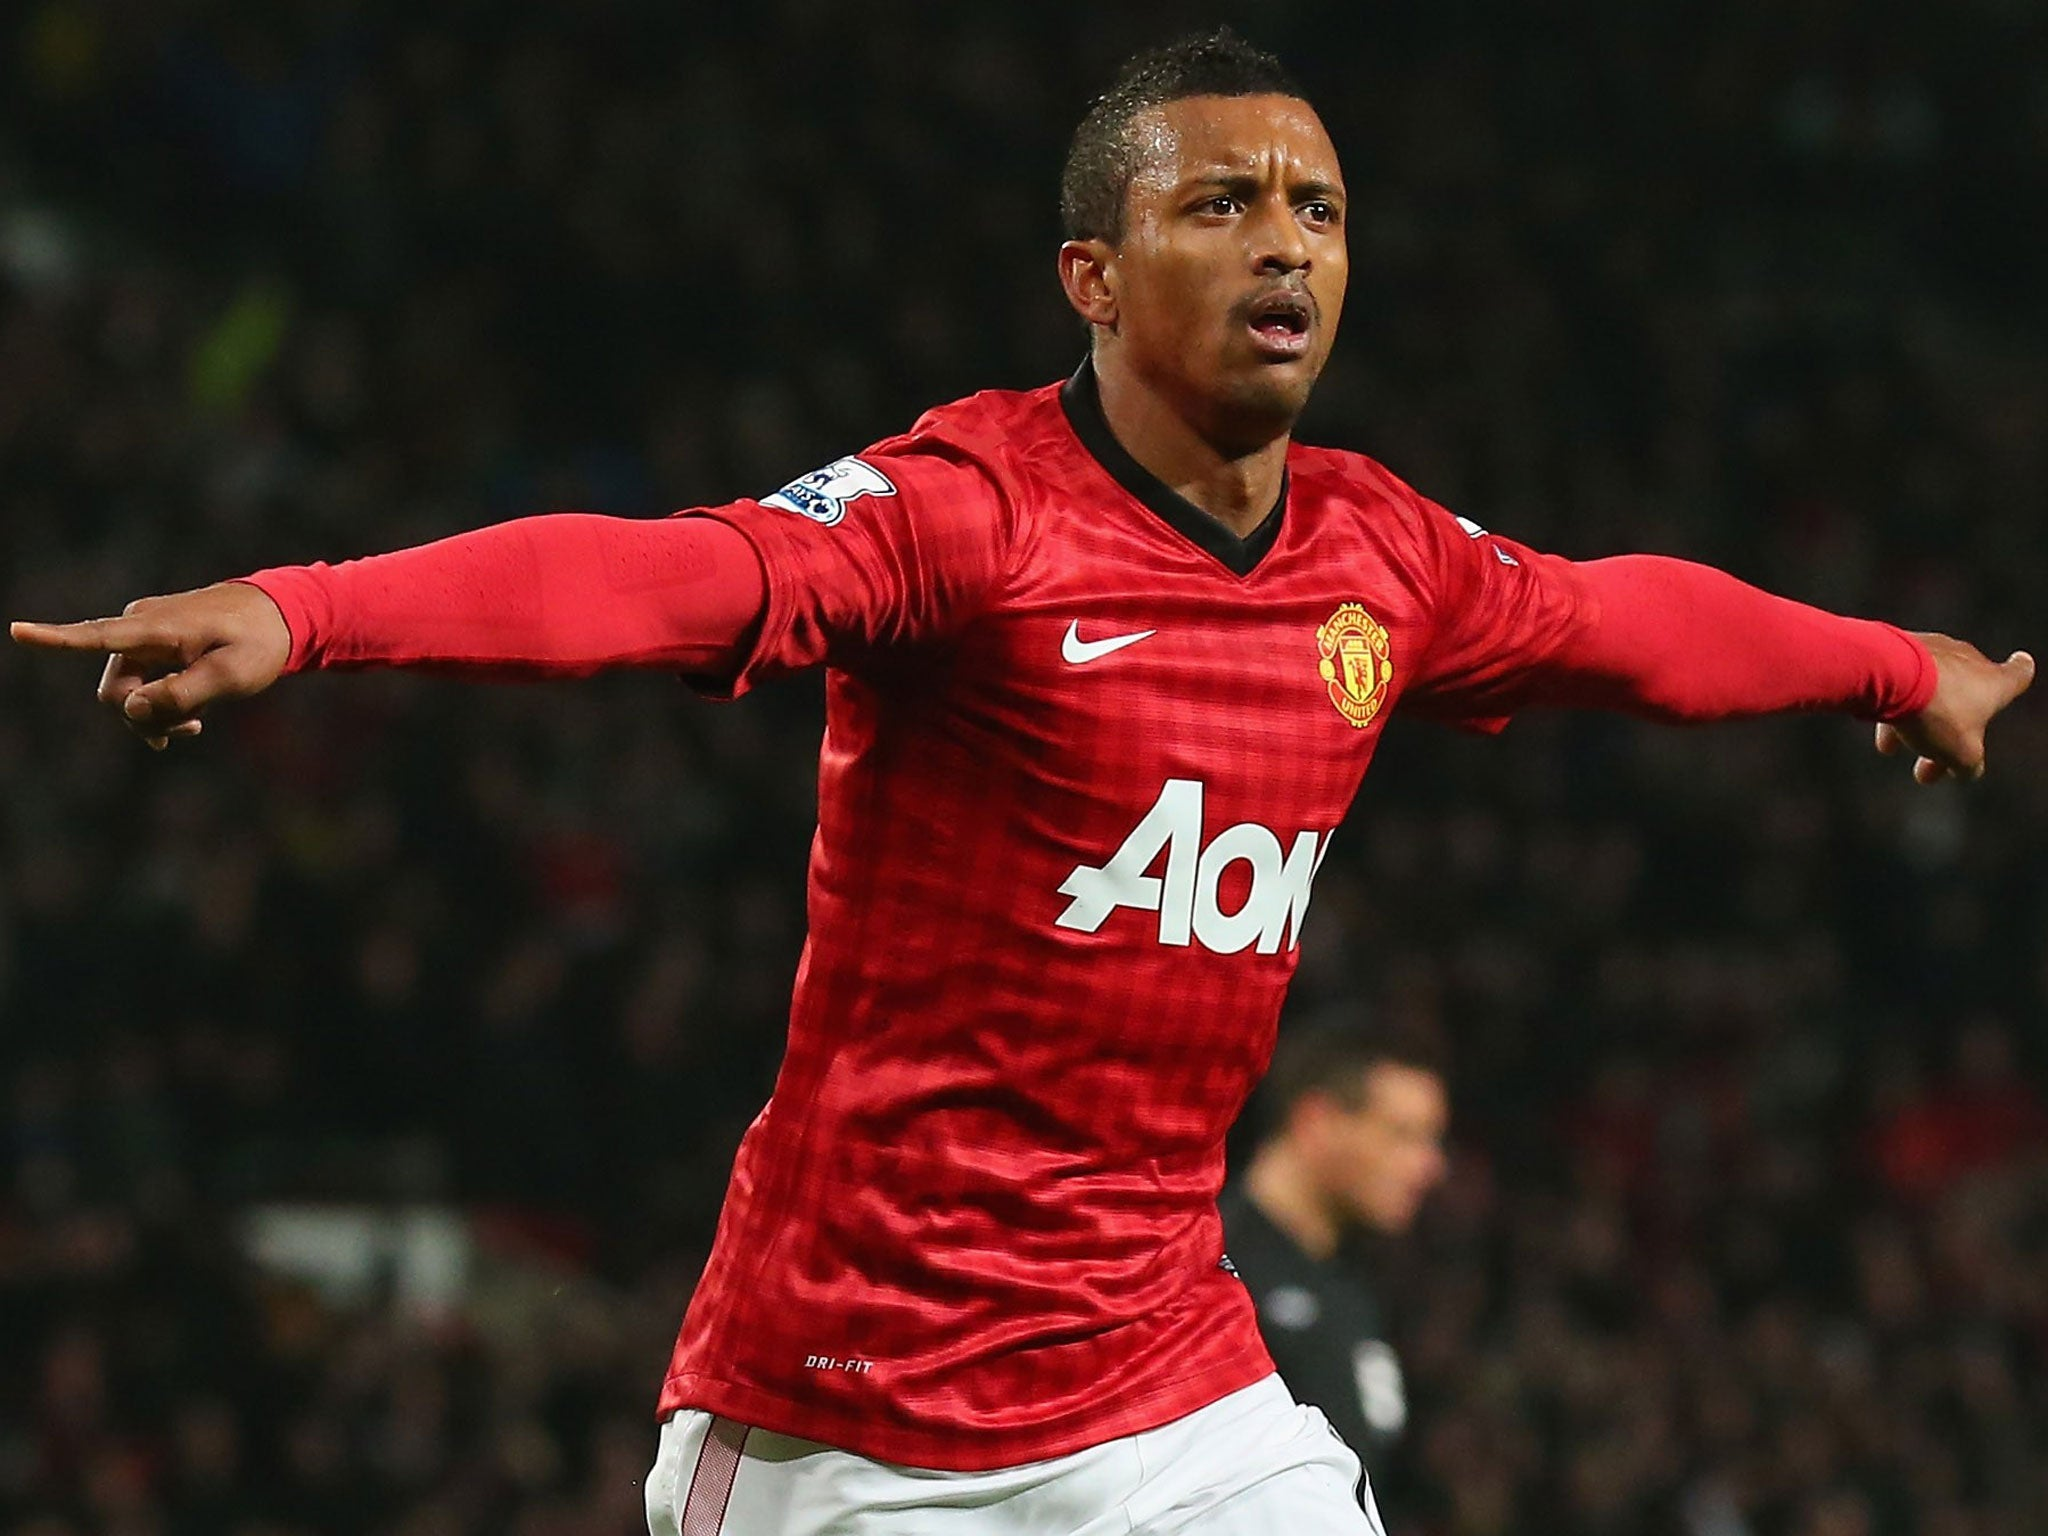 Nani can still have a future at Manchester United says Alex